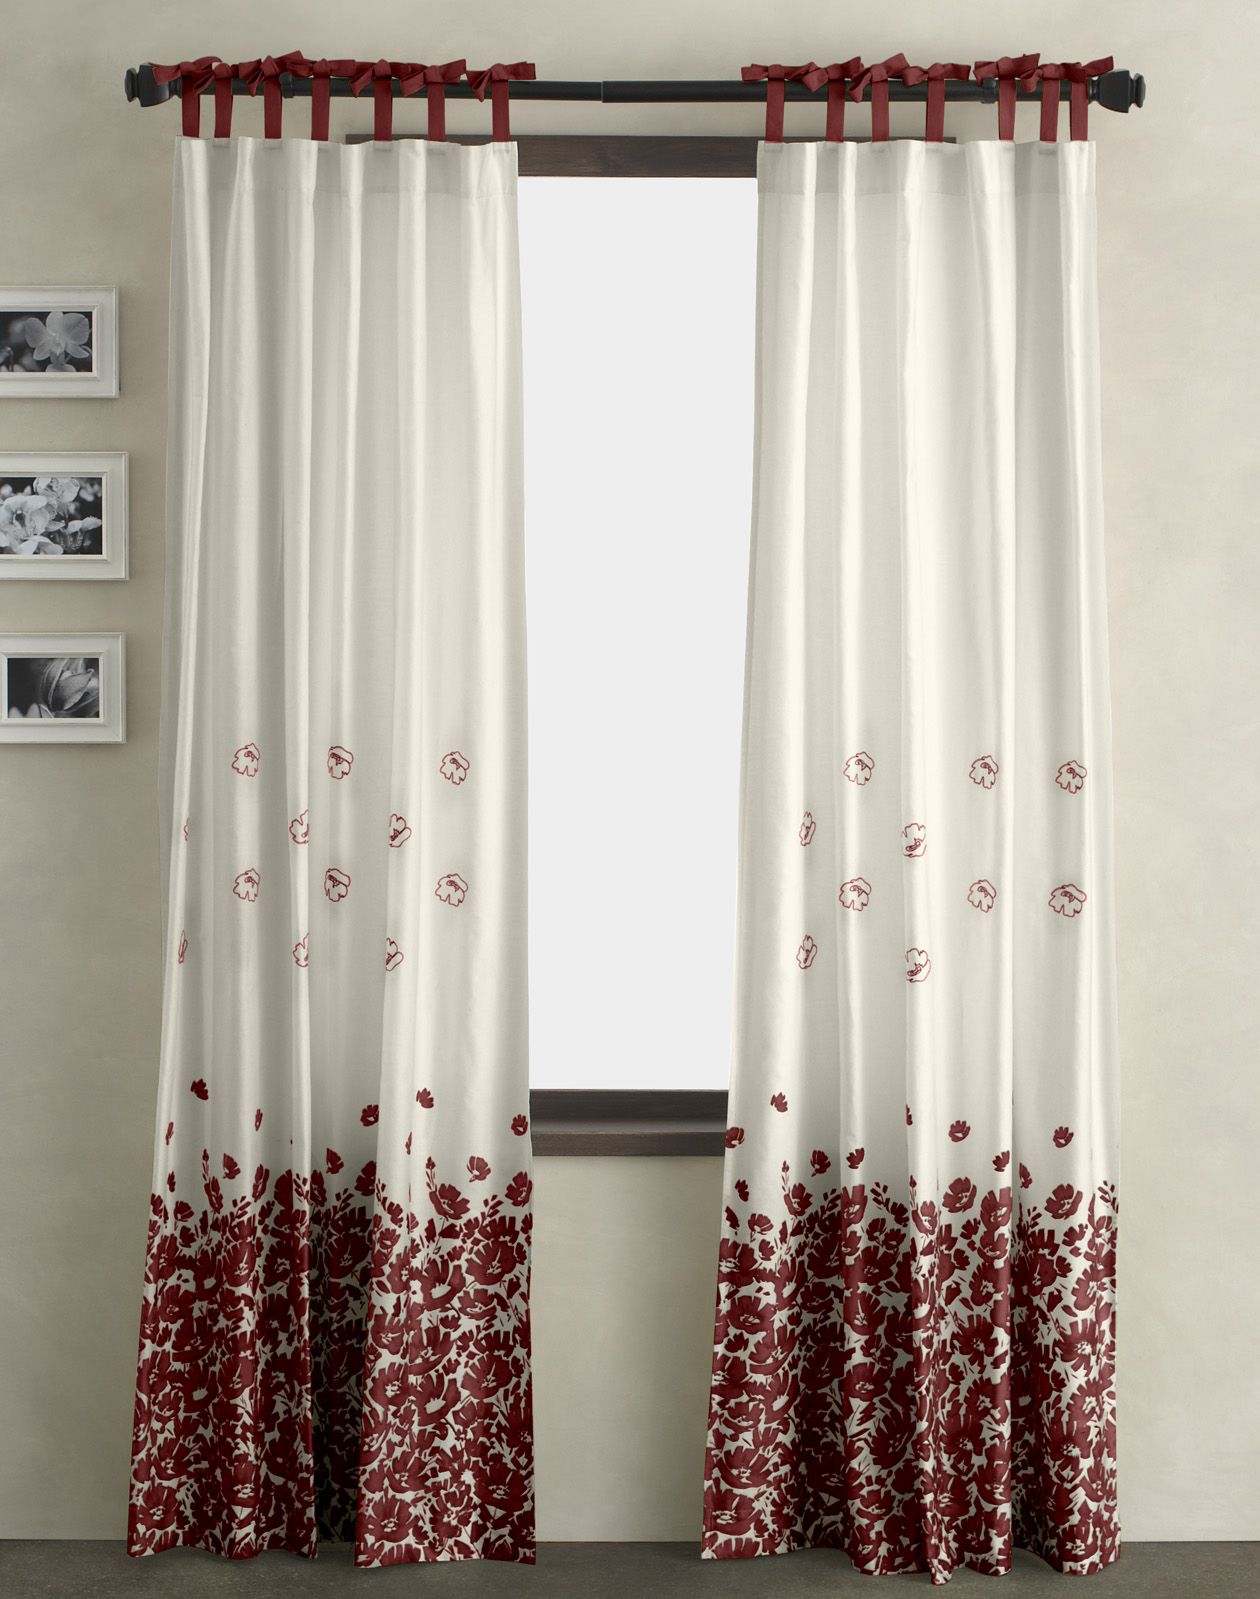 Window Curtain For Living Room 1000 Images About Cirtains On Pinterest Window Treatments